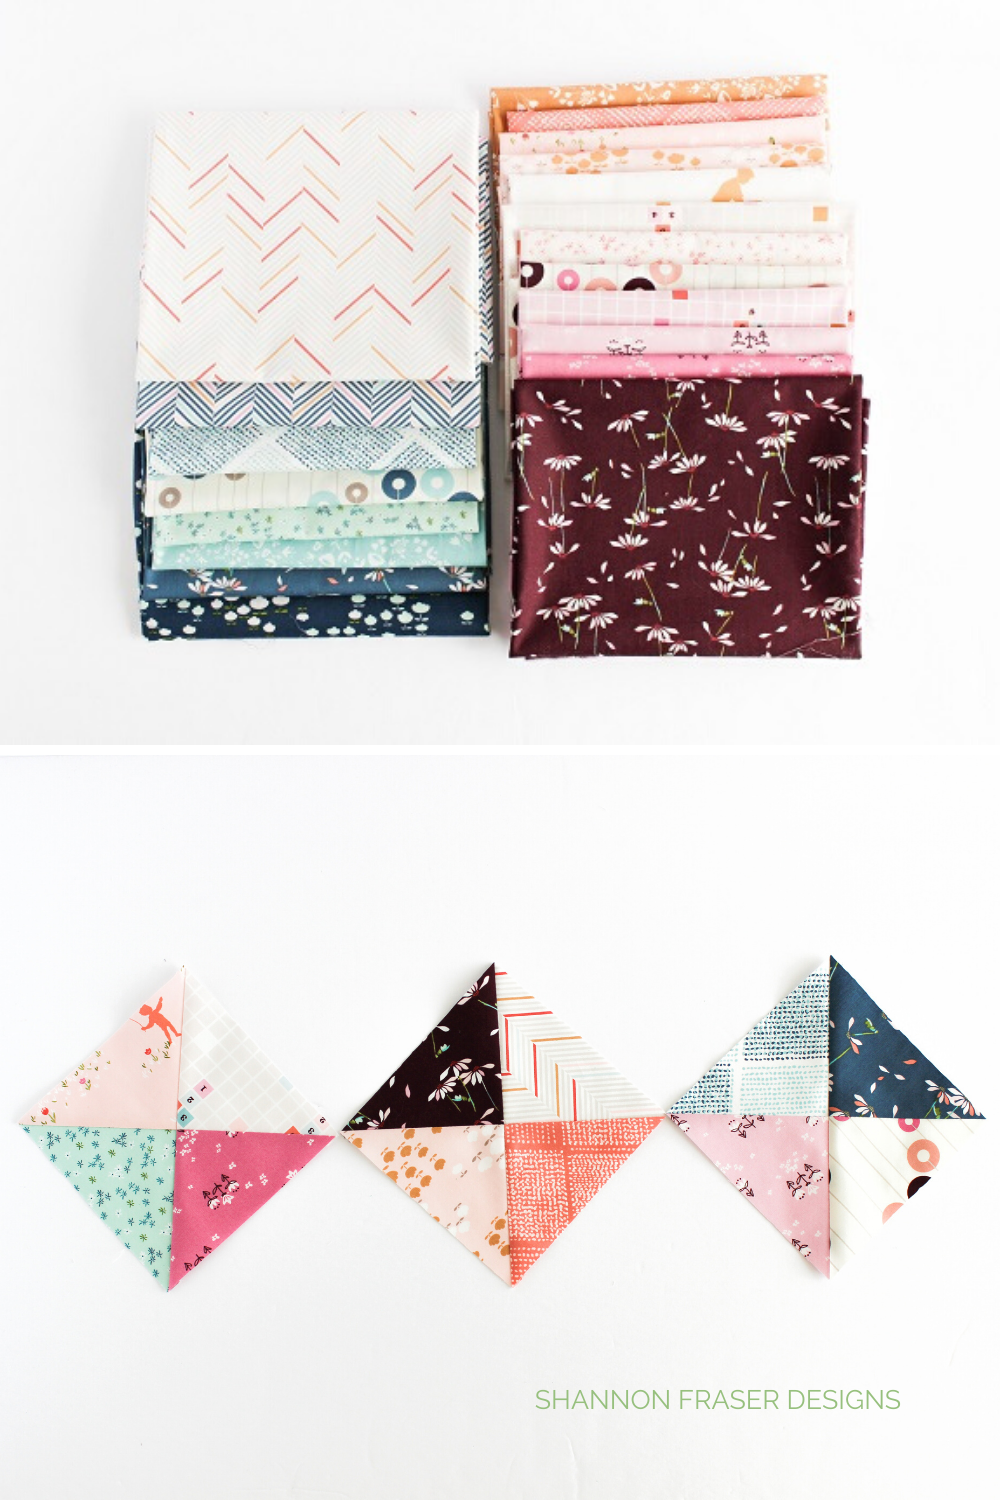 Playground fat quarter bundle and hourglass quilt blocks featuring the fabrics | Playground showcase | Shannon Fraser Designs #quilting